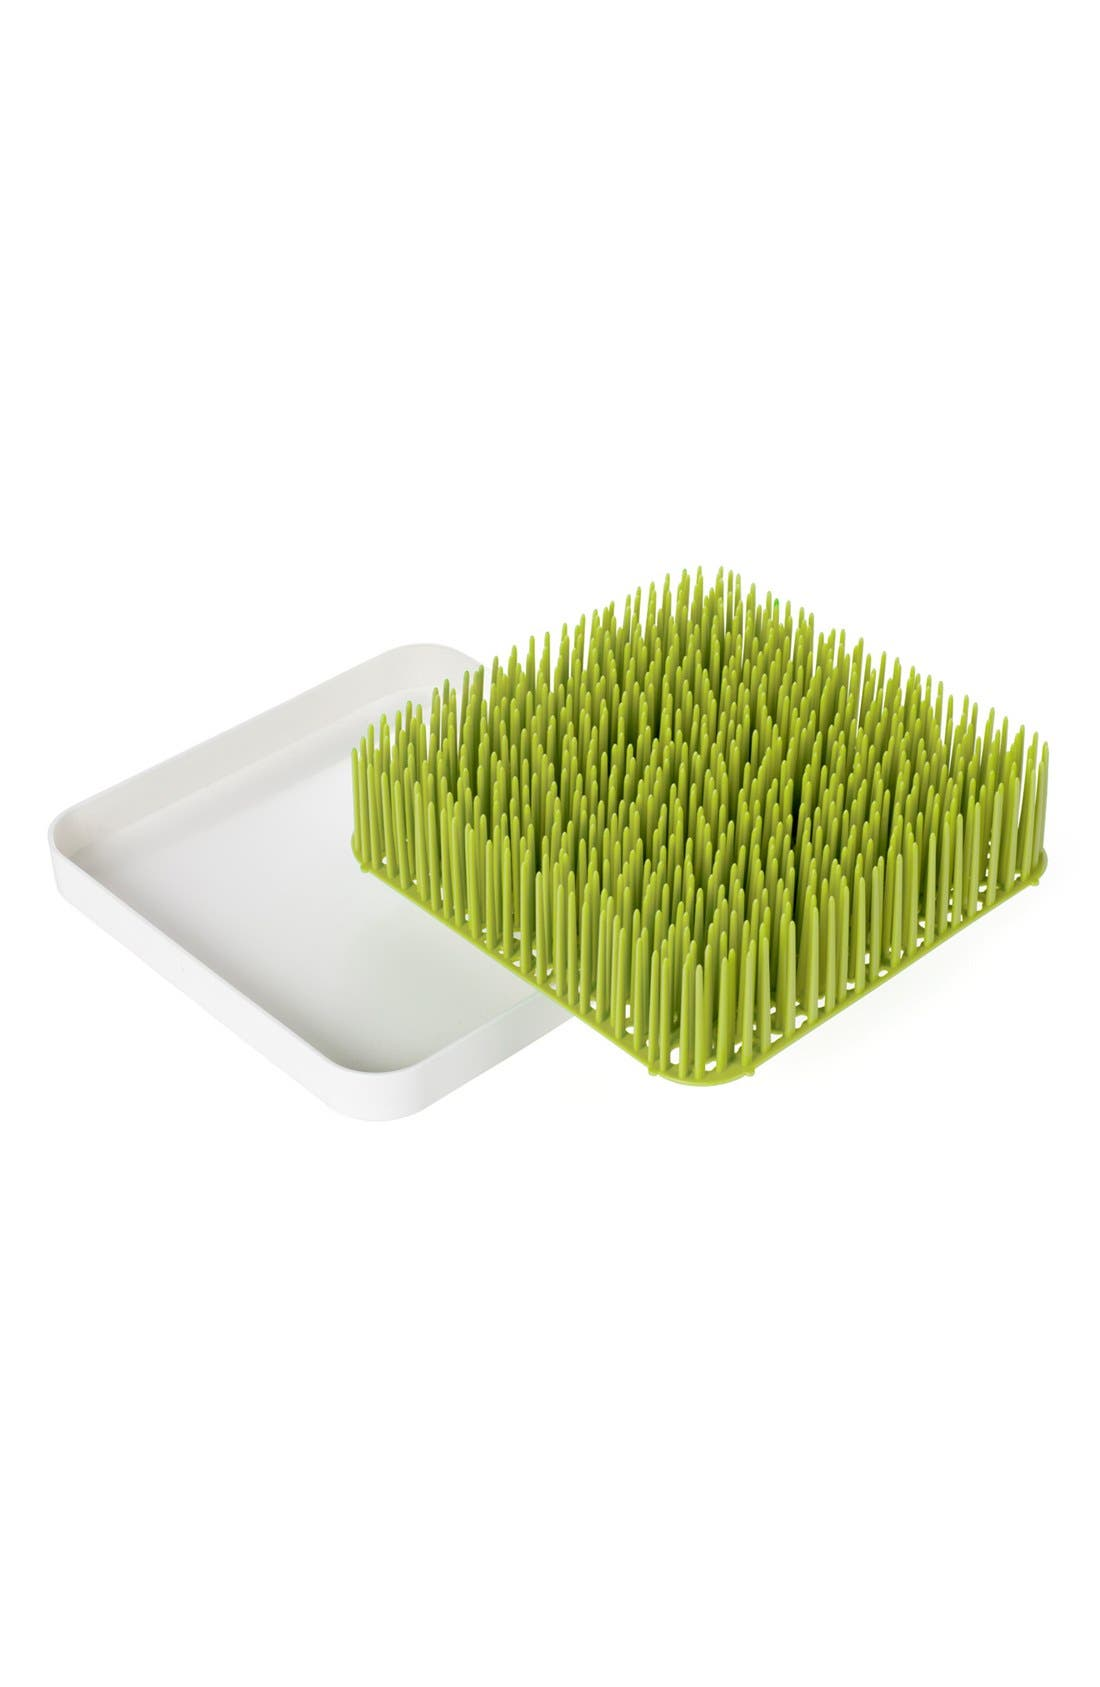 Main Image - Boon 'Lawn' Drying Rack